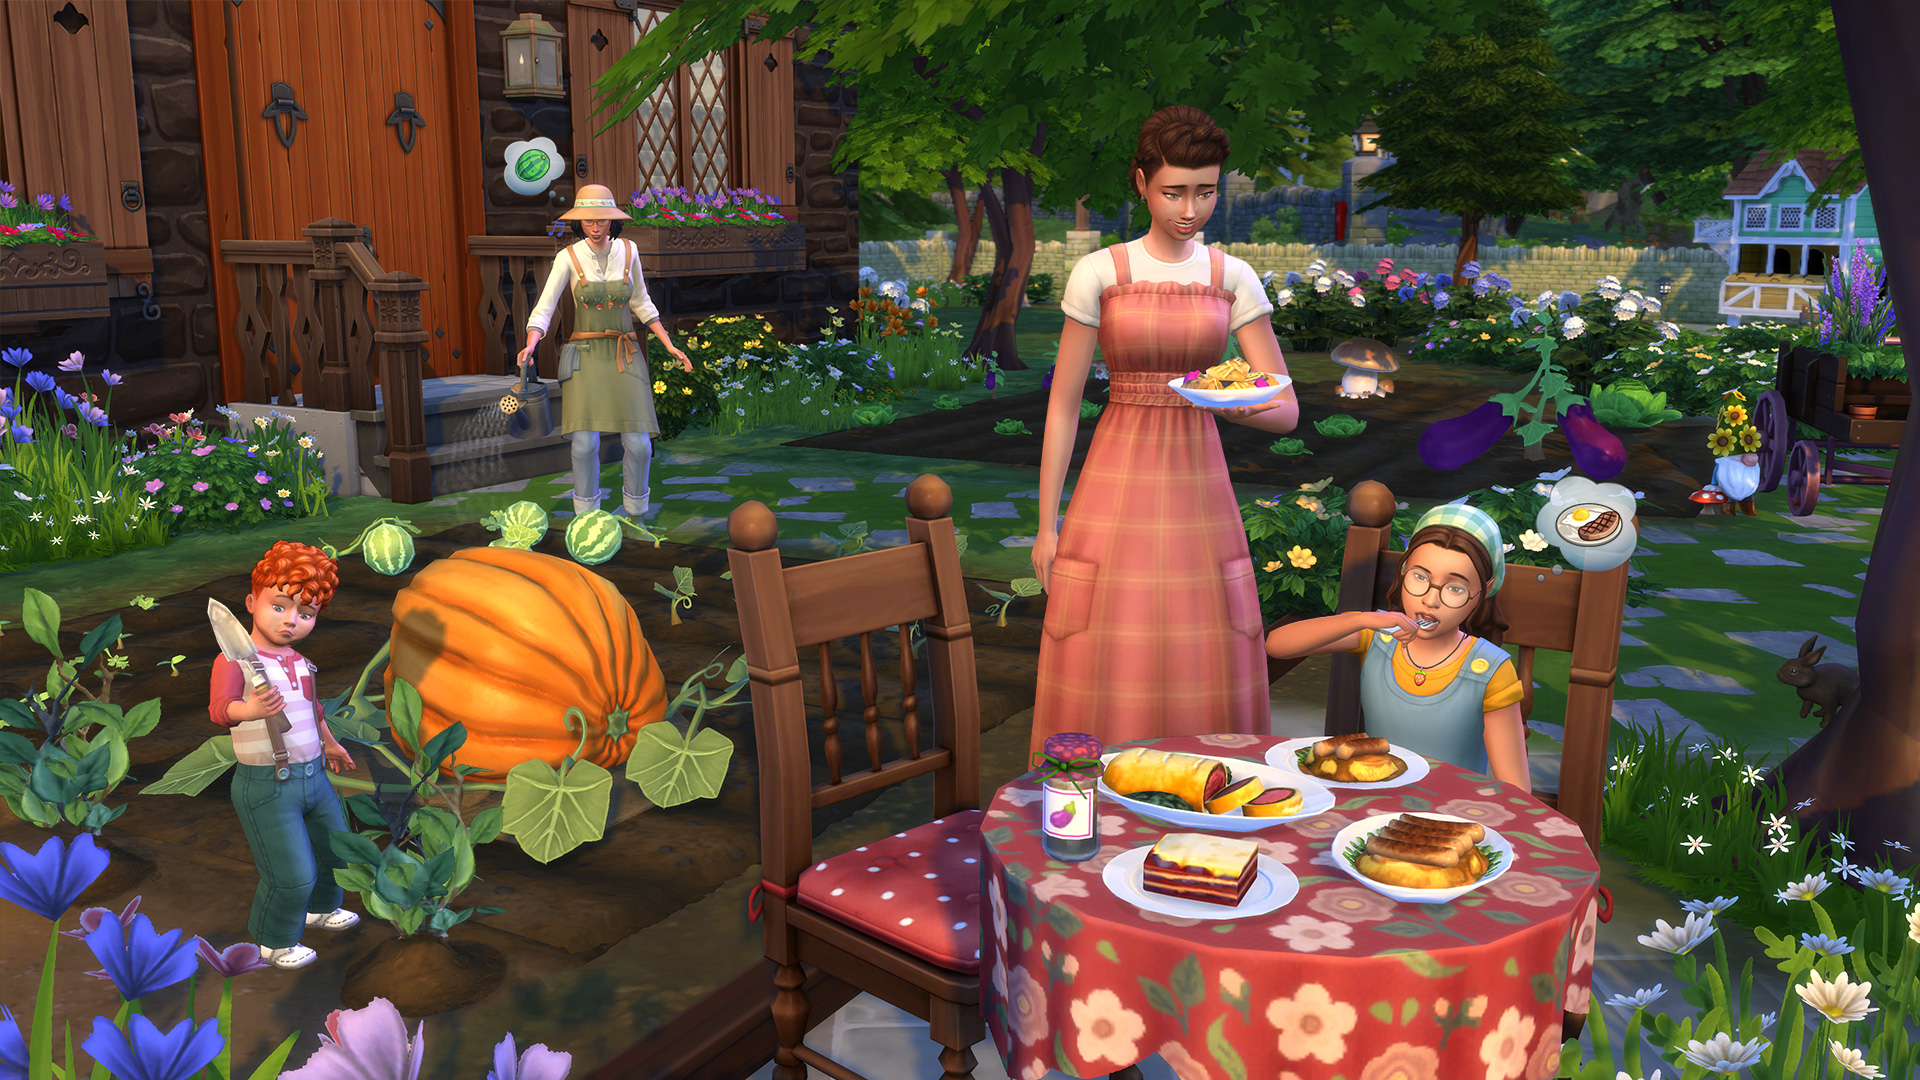 The Sims 4 Cottage Living - Family Meal Outdoor in the Farm Garden